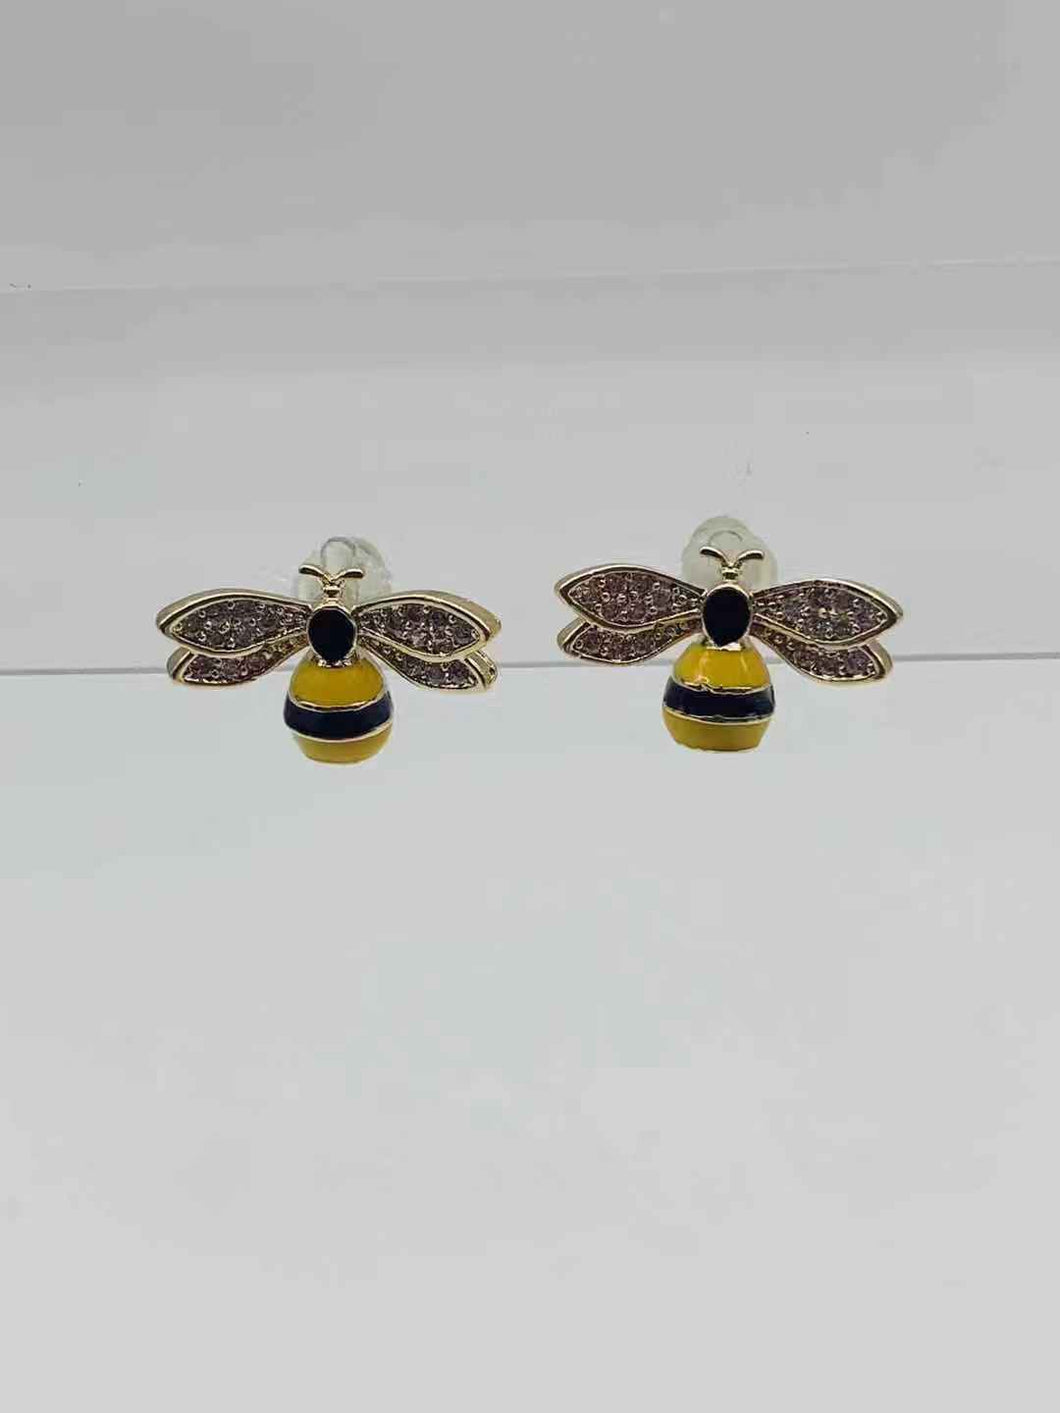 22-JM-JA05084, Bumble Bee Earring ($36 for 12)